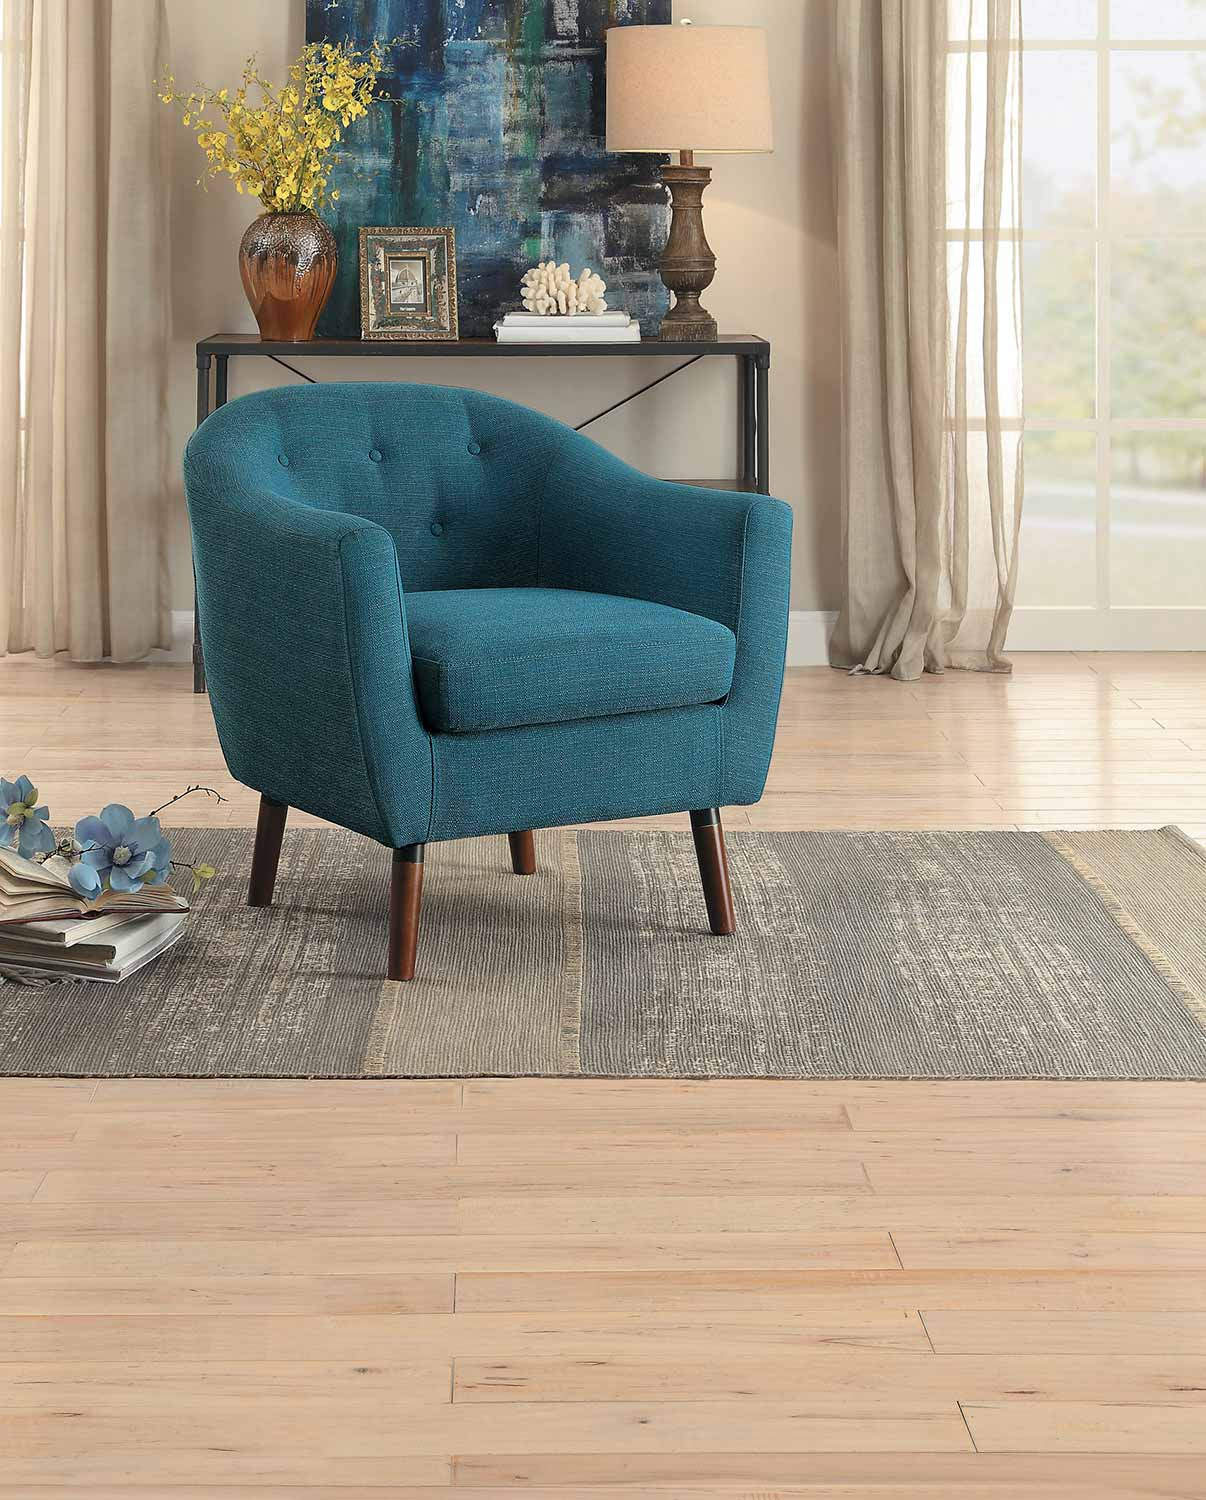 Homelegance Lucille Accent Chair - Blue